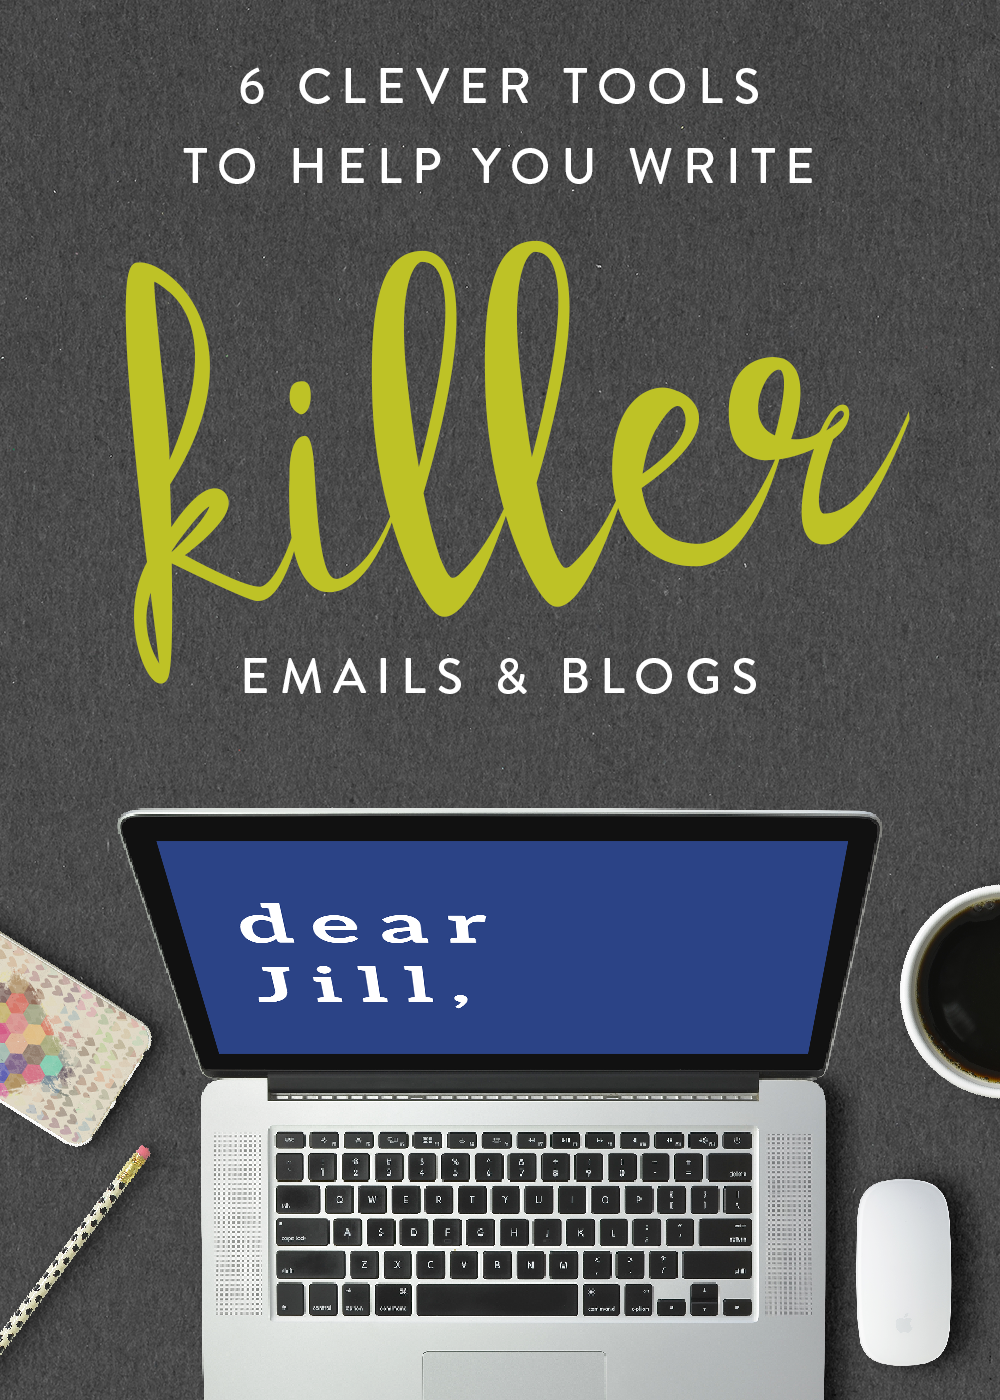 6 clever tools to help you write killer emails & blogs by www.garlicfriday.com